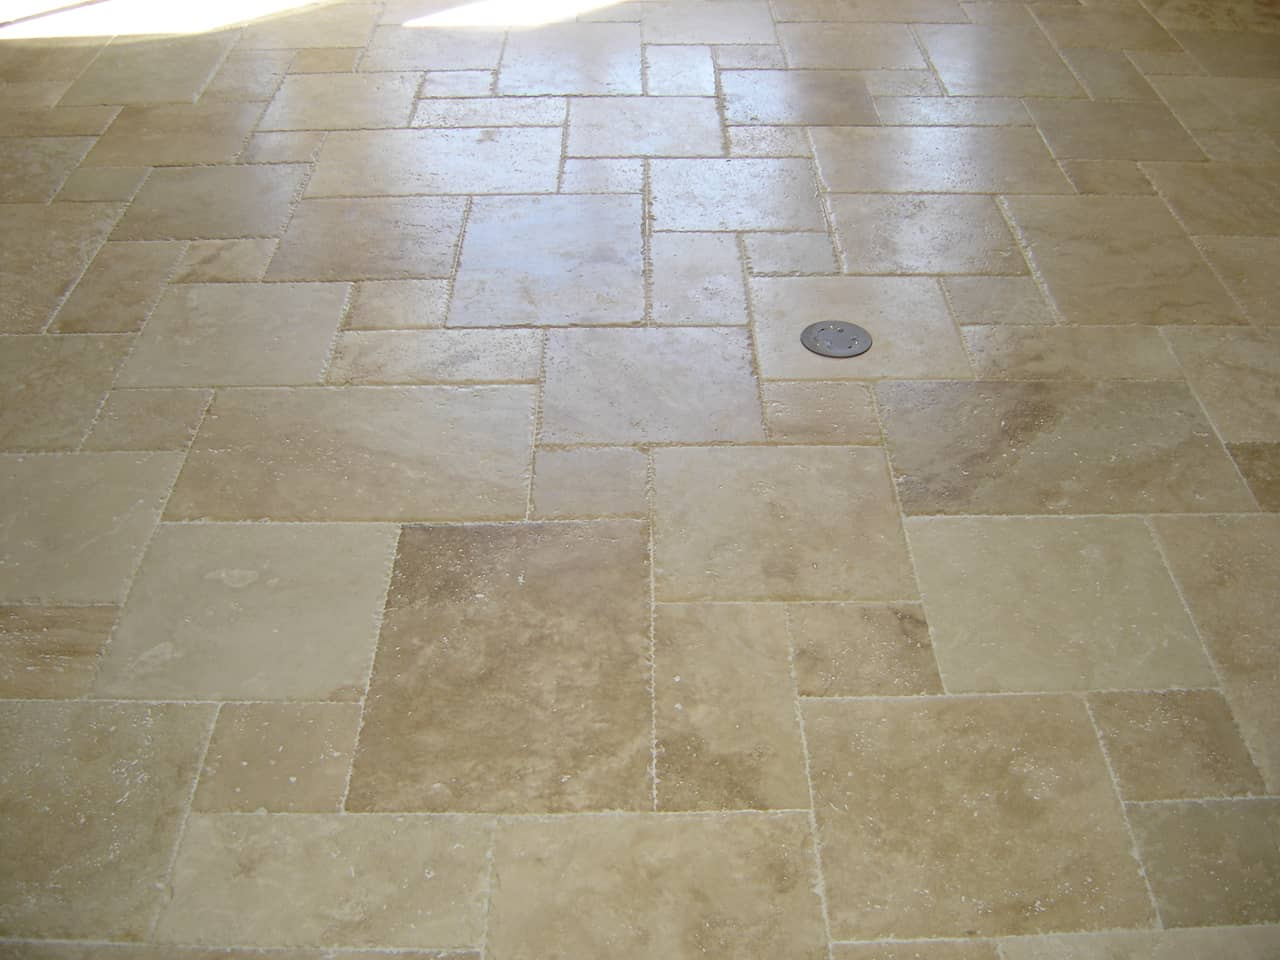 Travertine floor tiles picture contemporary tile design for Travertine tile designs